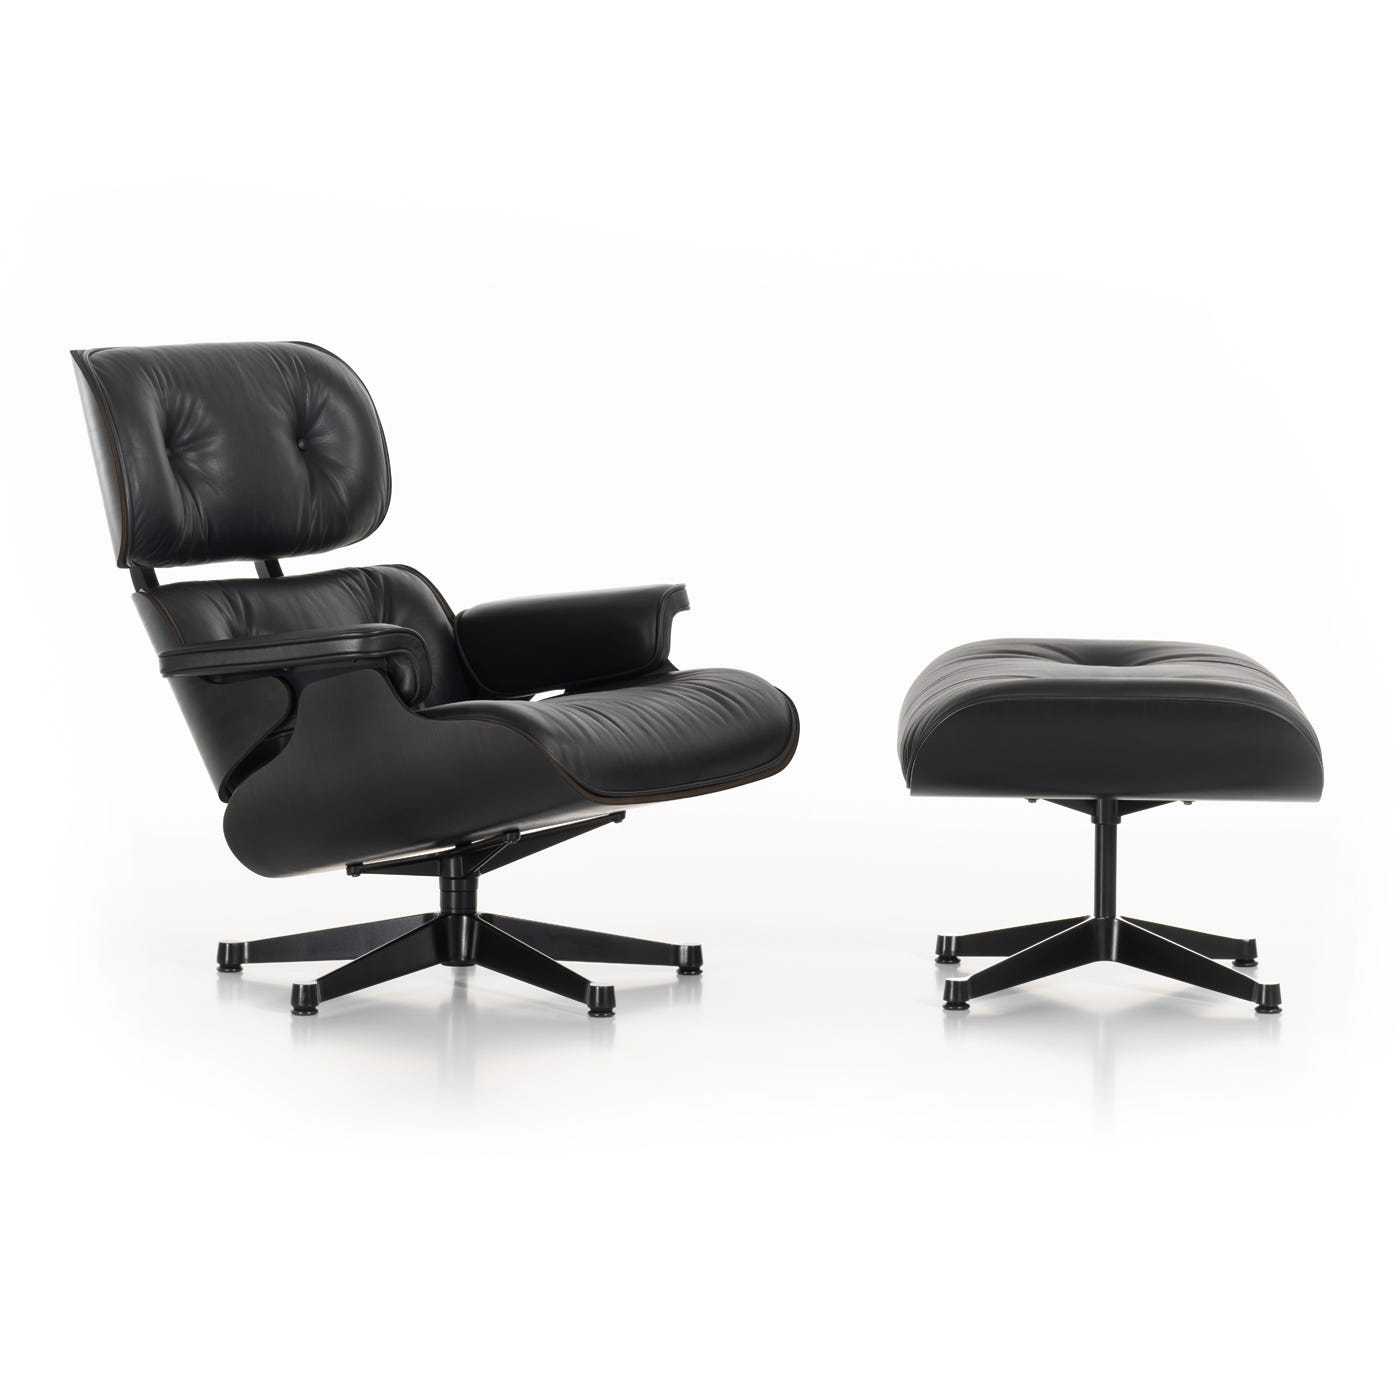 Eames Lounge Chair and Ottoman Nero Leather Premium Black Ash Wood Black Base - New Dimensions